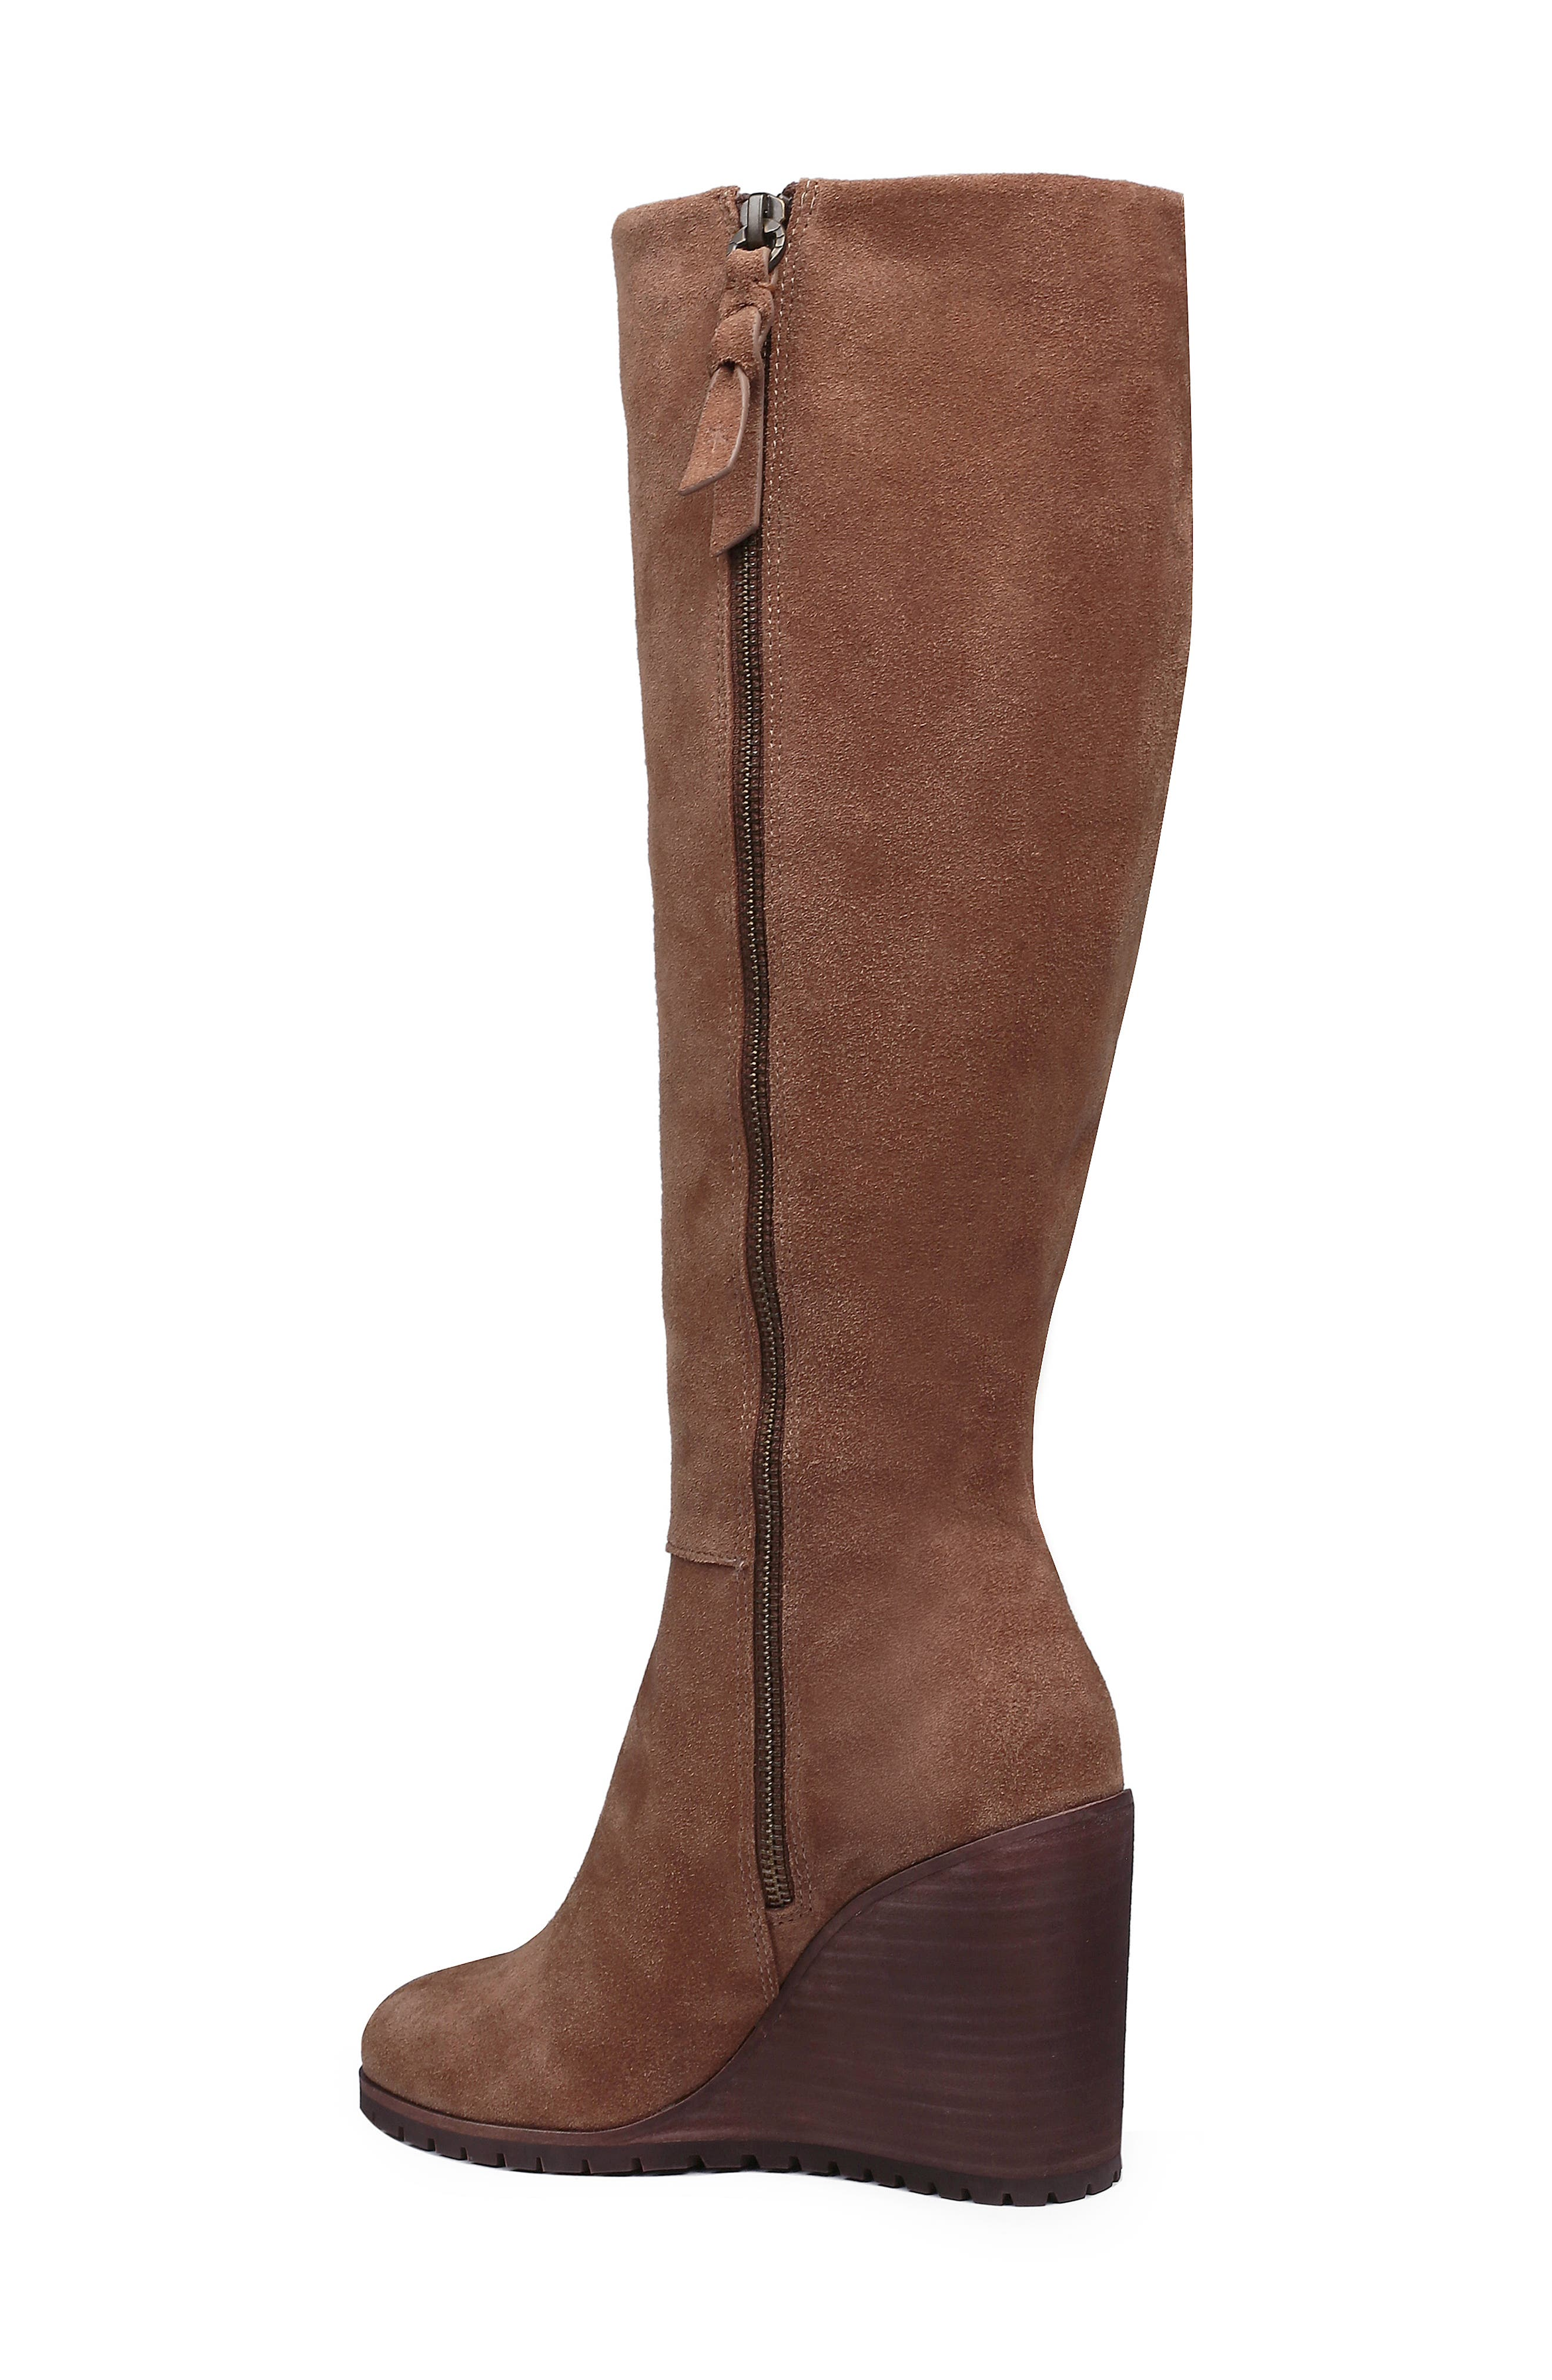 Cleveland Wedge Boot,                             Alternate thumbnail 2, color,                             LIGHT BROWN SUEDE